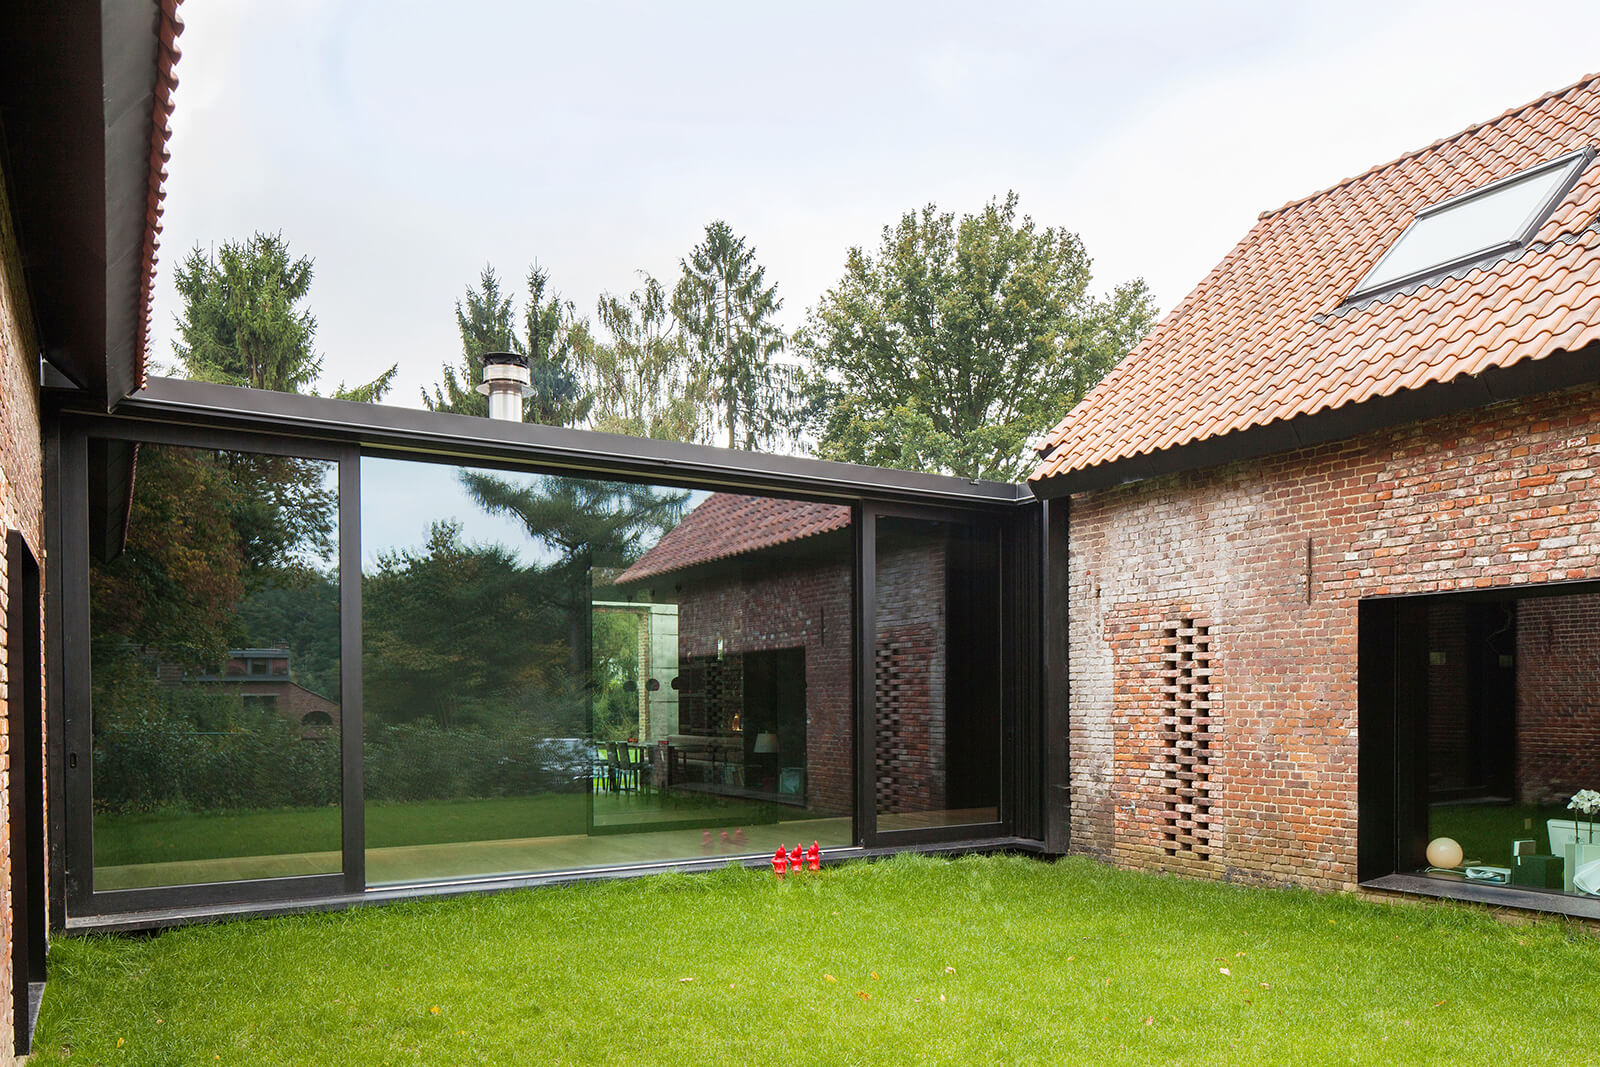 © Thomas Janssens / Hunting House 'La Branche' / DMOA architecten